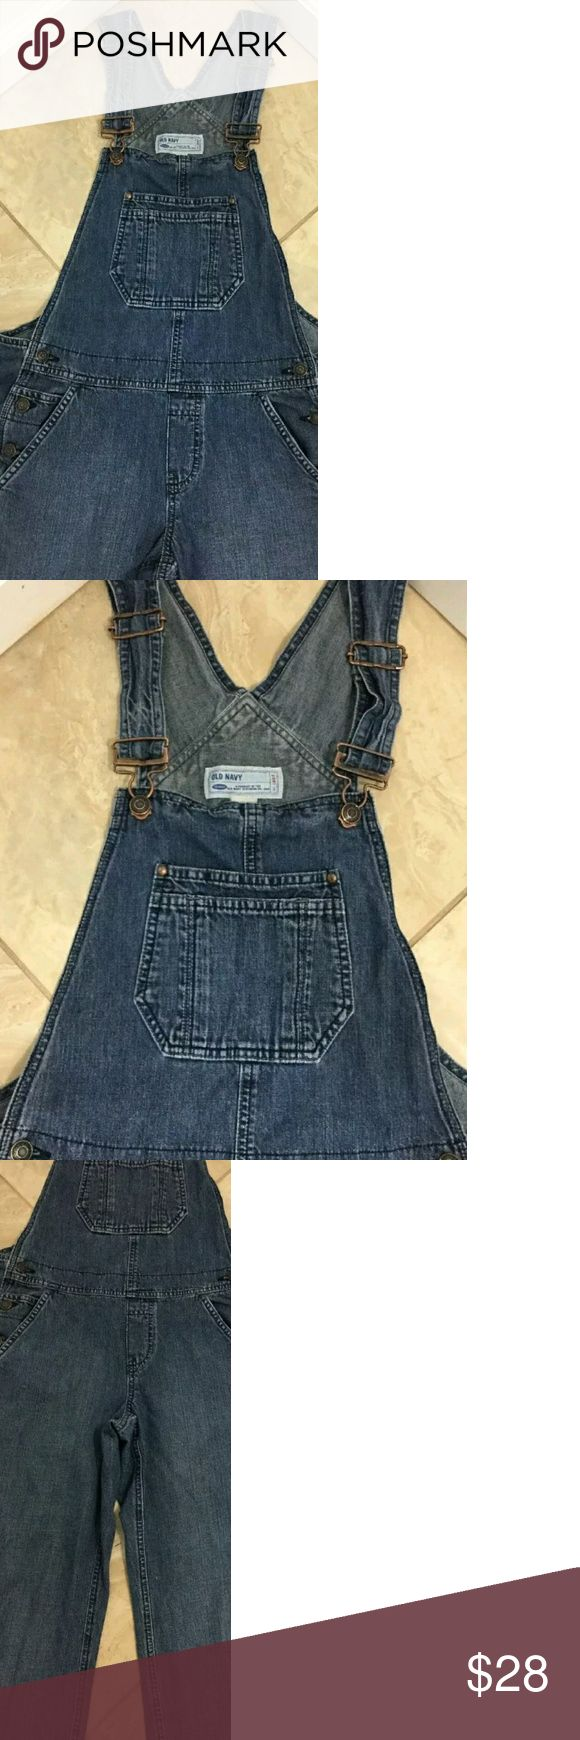 Old Navy Overalls Excellent condition! Old navy overalls, size medium! So cute with a little tank top on a summer day! Old Navy Jeans Overalls